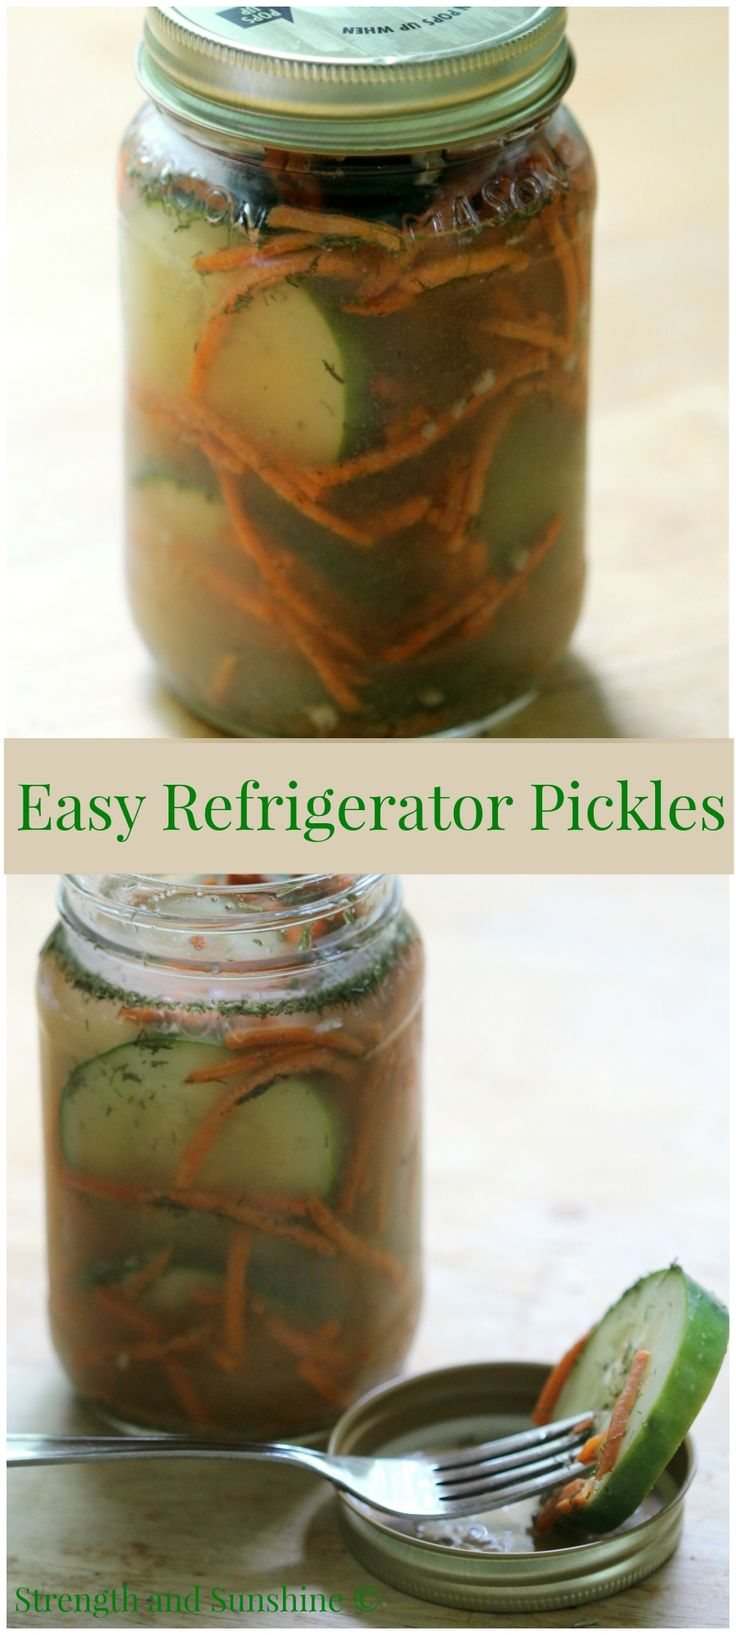 last of your summer cucumbers and make some easy refrigerator pickles ...